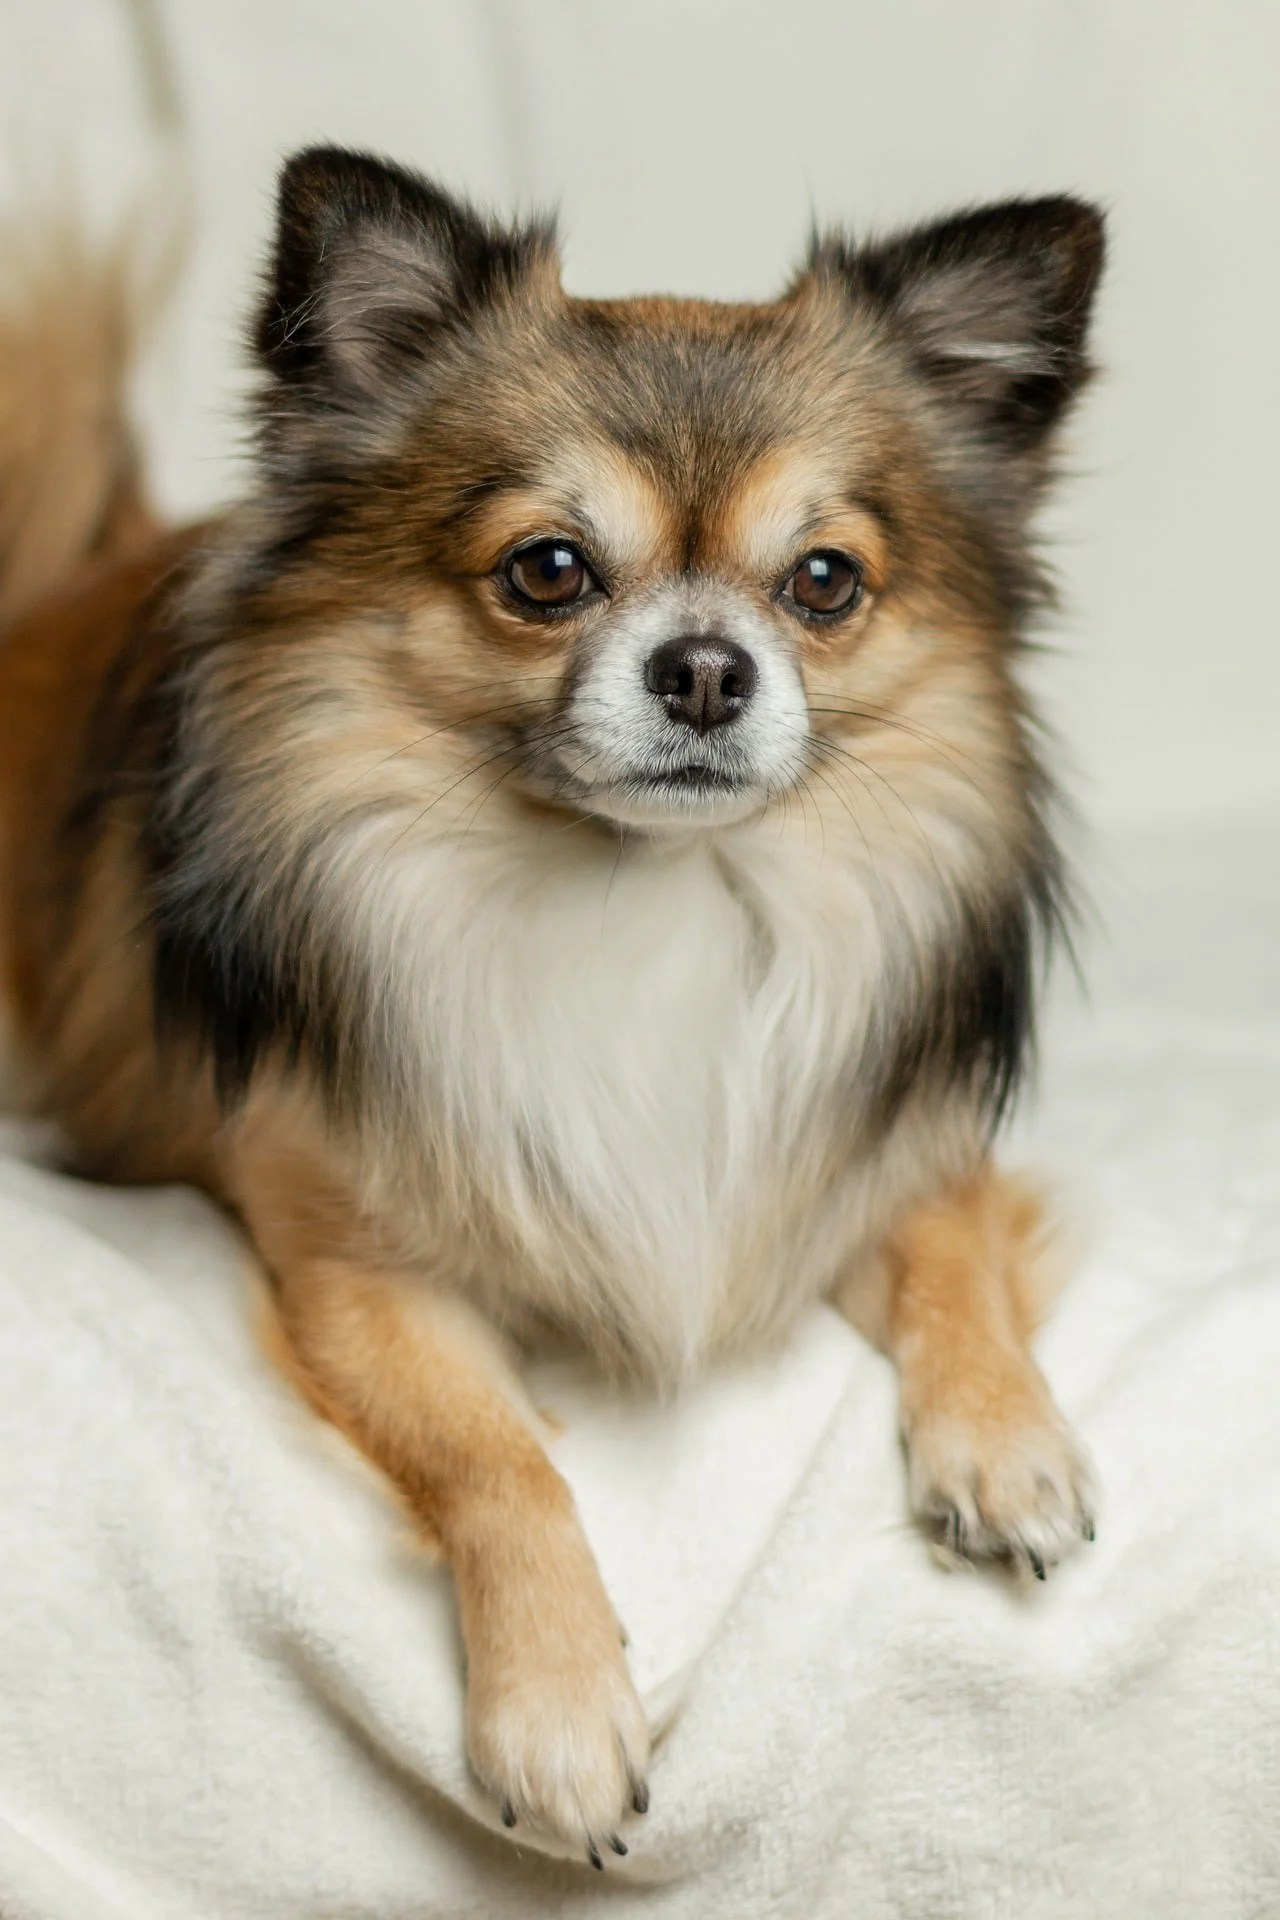 Lion Hair Cut For Dogs : Haired, Chihuahua, Cuts:, Guide, Grooming, Hairstyle